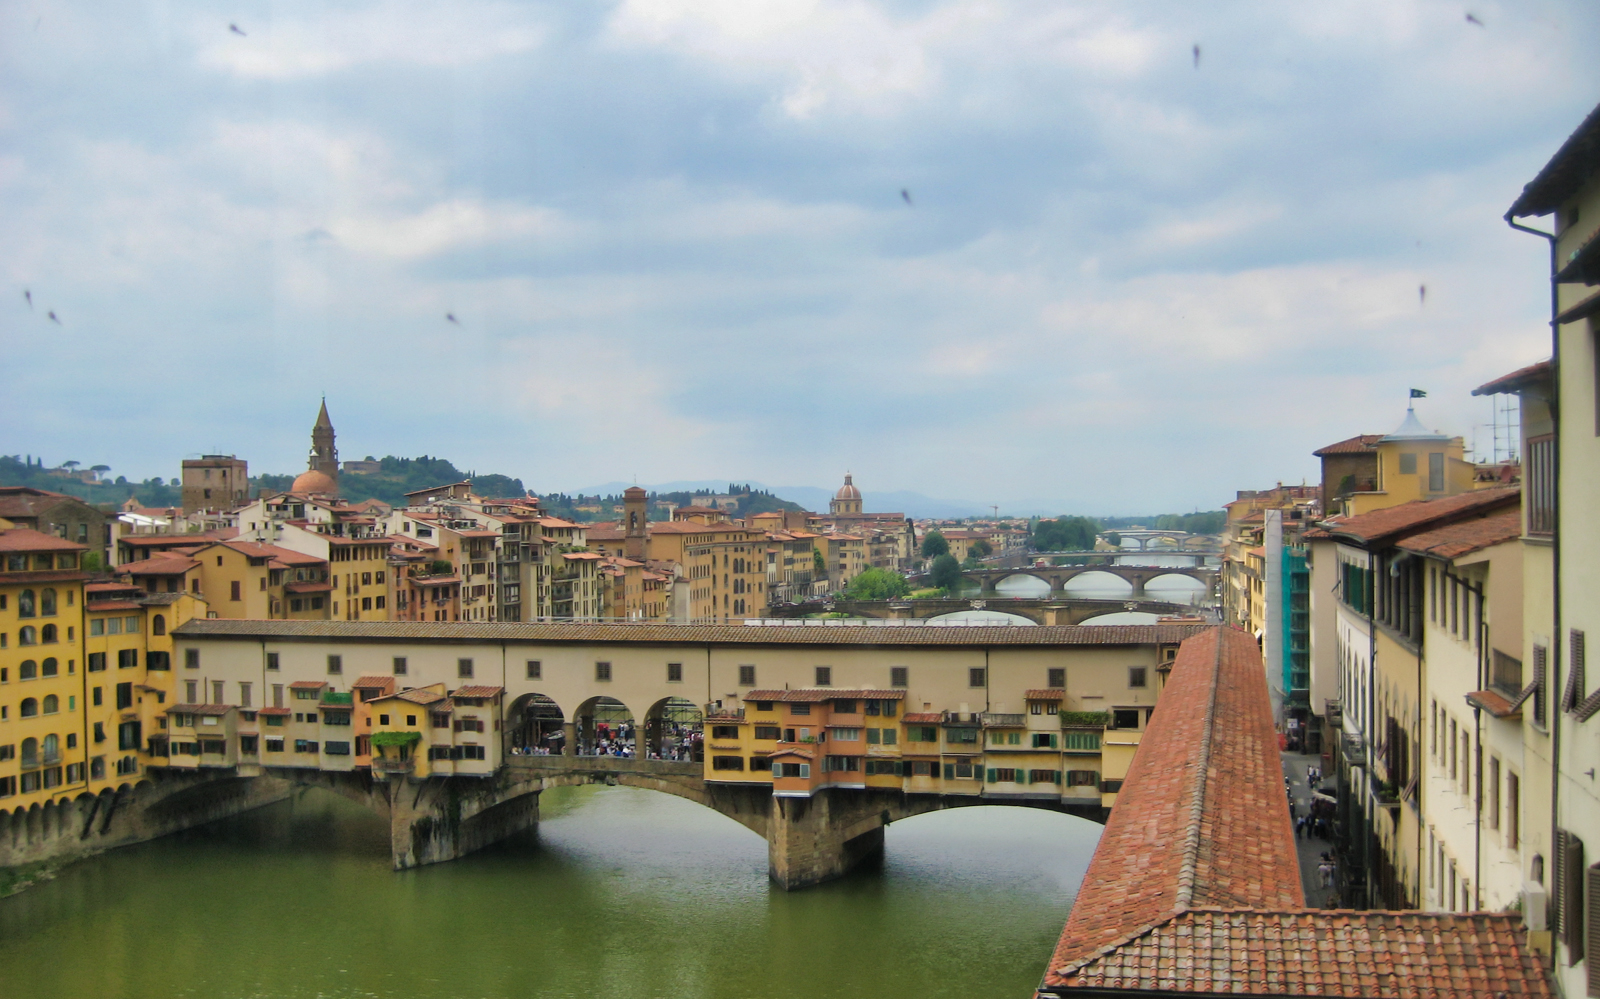 76bd5bbb ee89 4b5f 9fea 612e778d7f2d 7605 florence skip the line to uffizi   accademia galleries   florence city tour 02